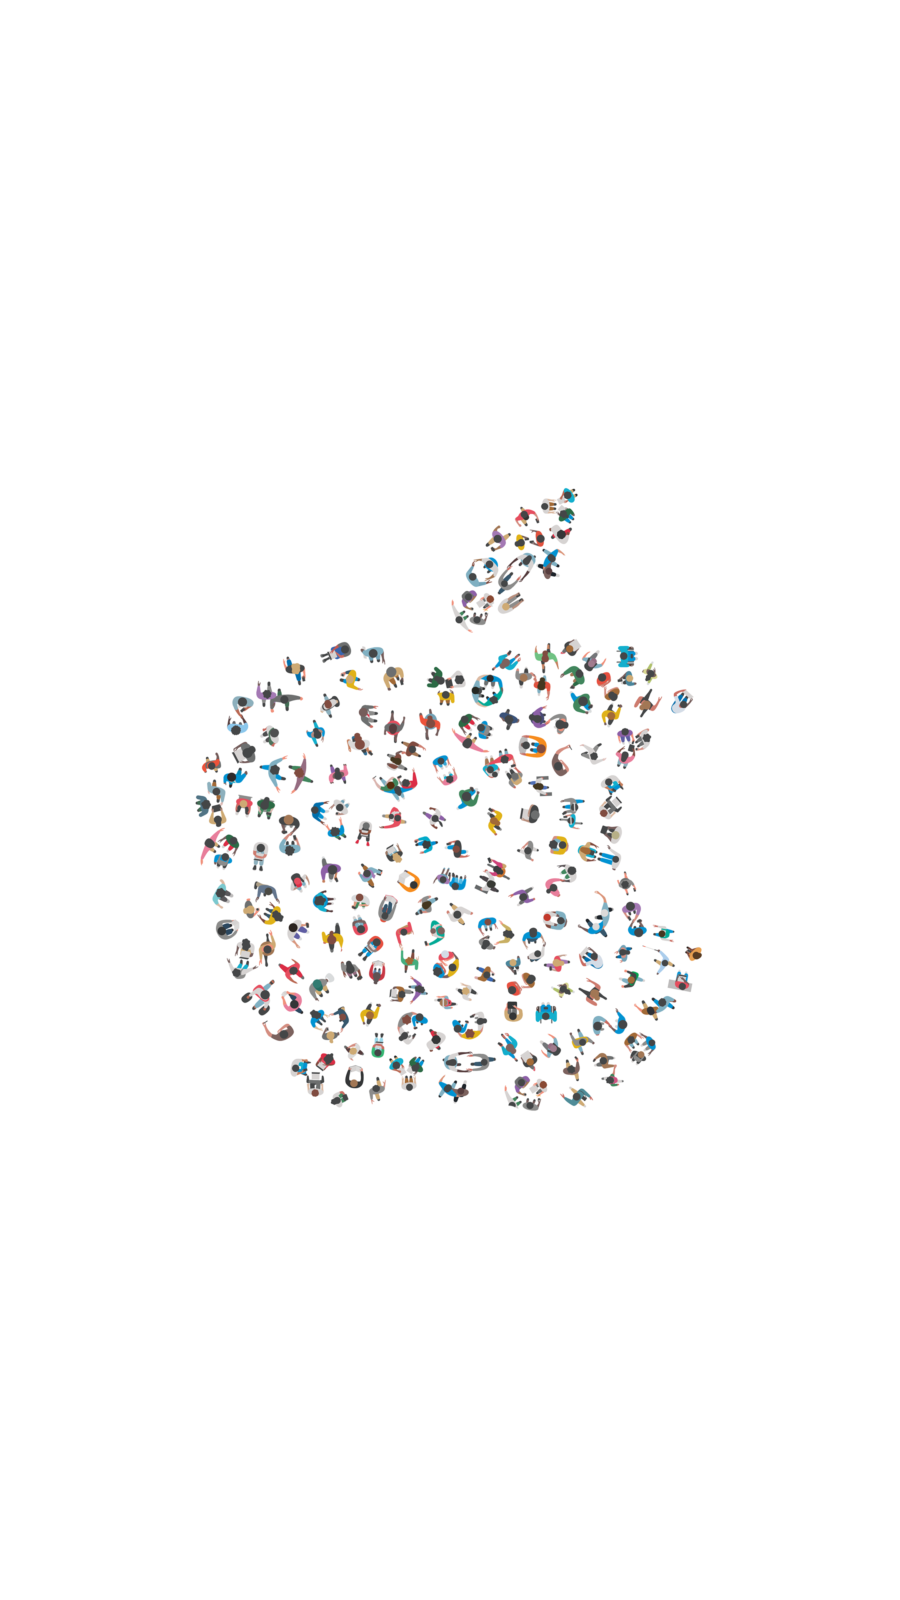 wwdc17-iPhone-wallpaper-mattbirchlerwhite-900x1600